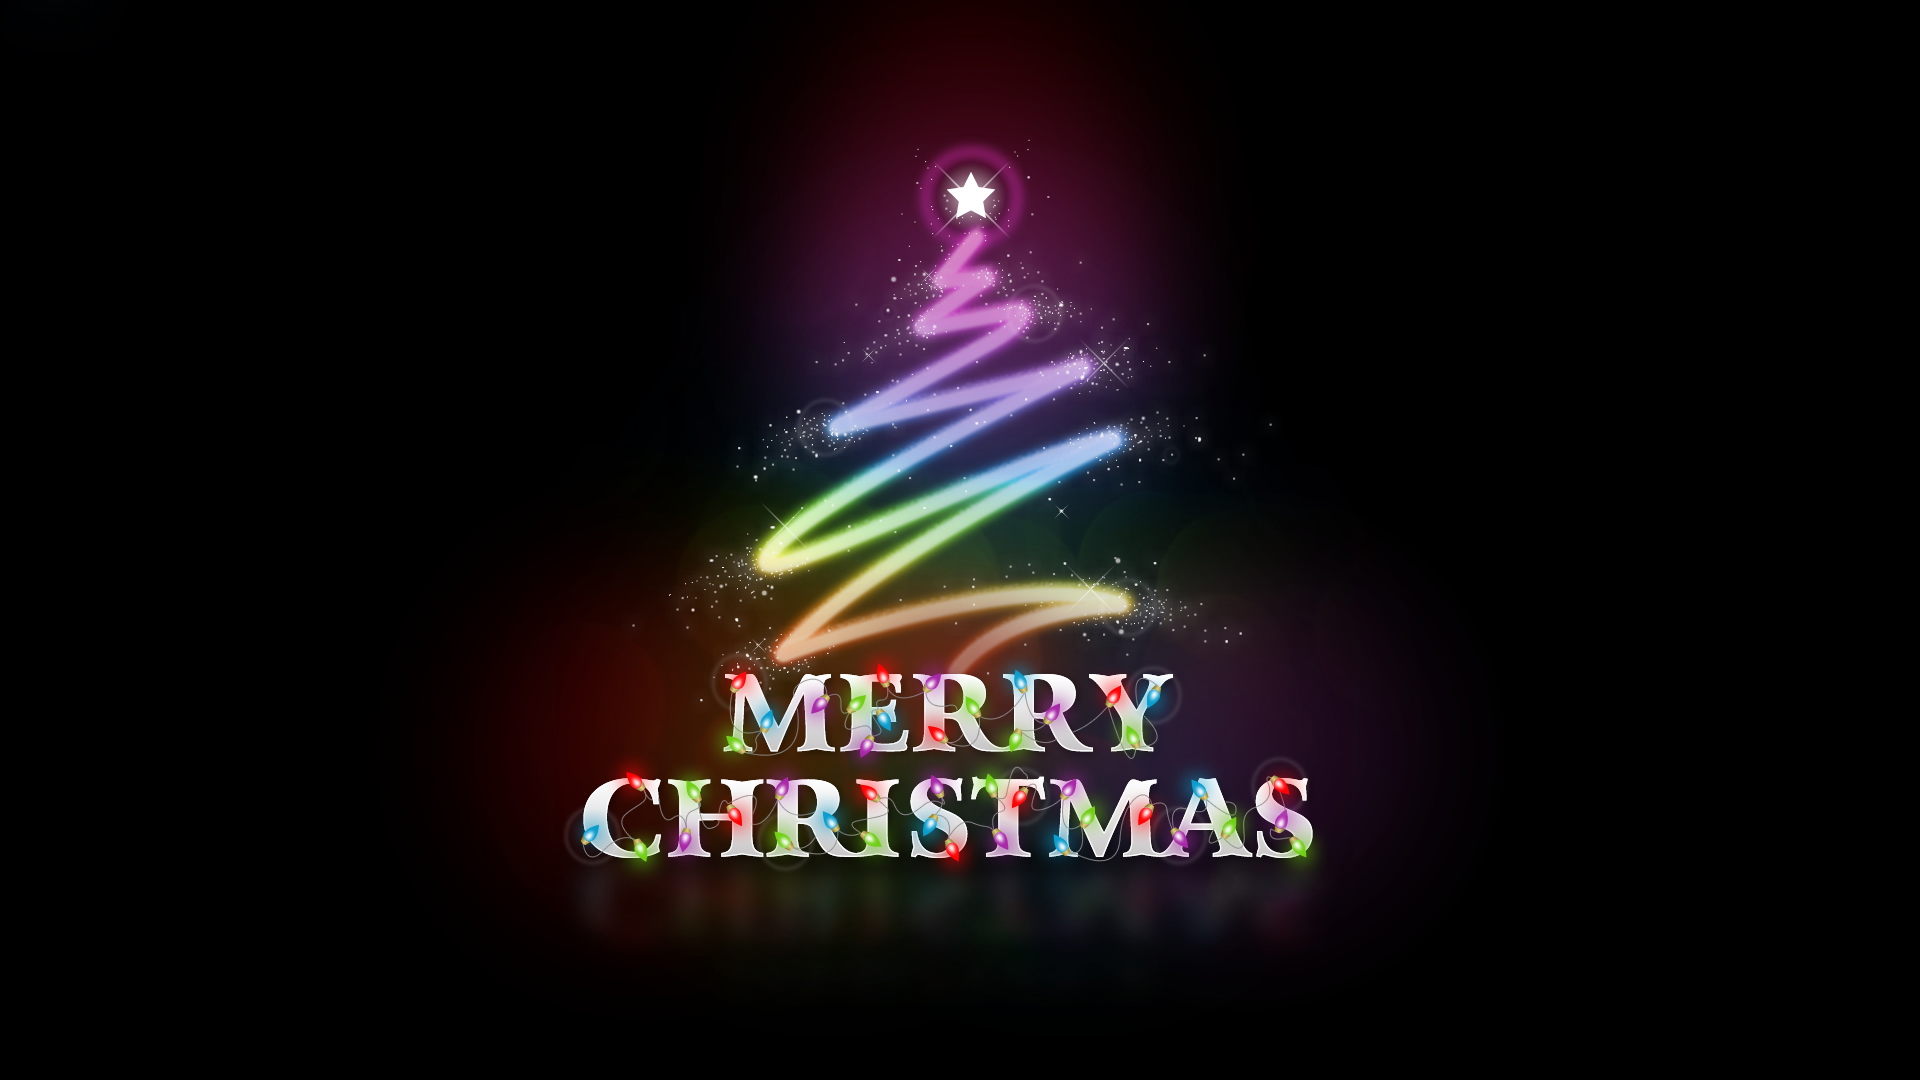 New Merry Christmas Wallpapers HD 2018 free download